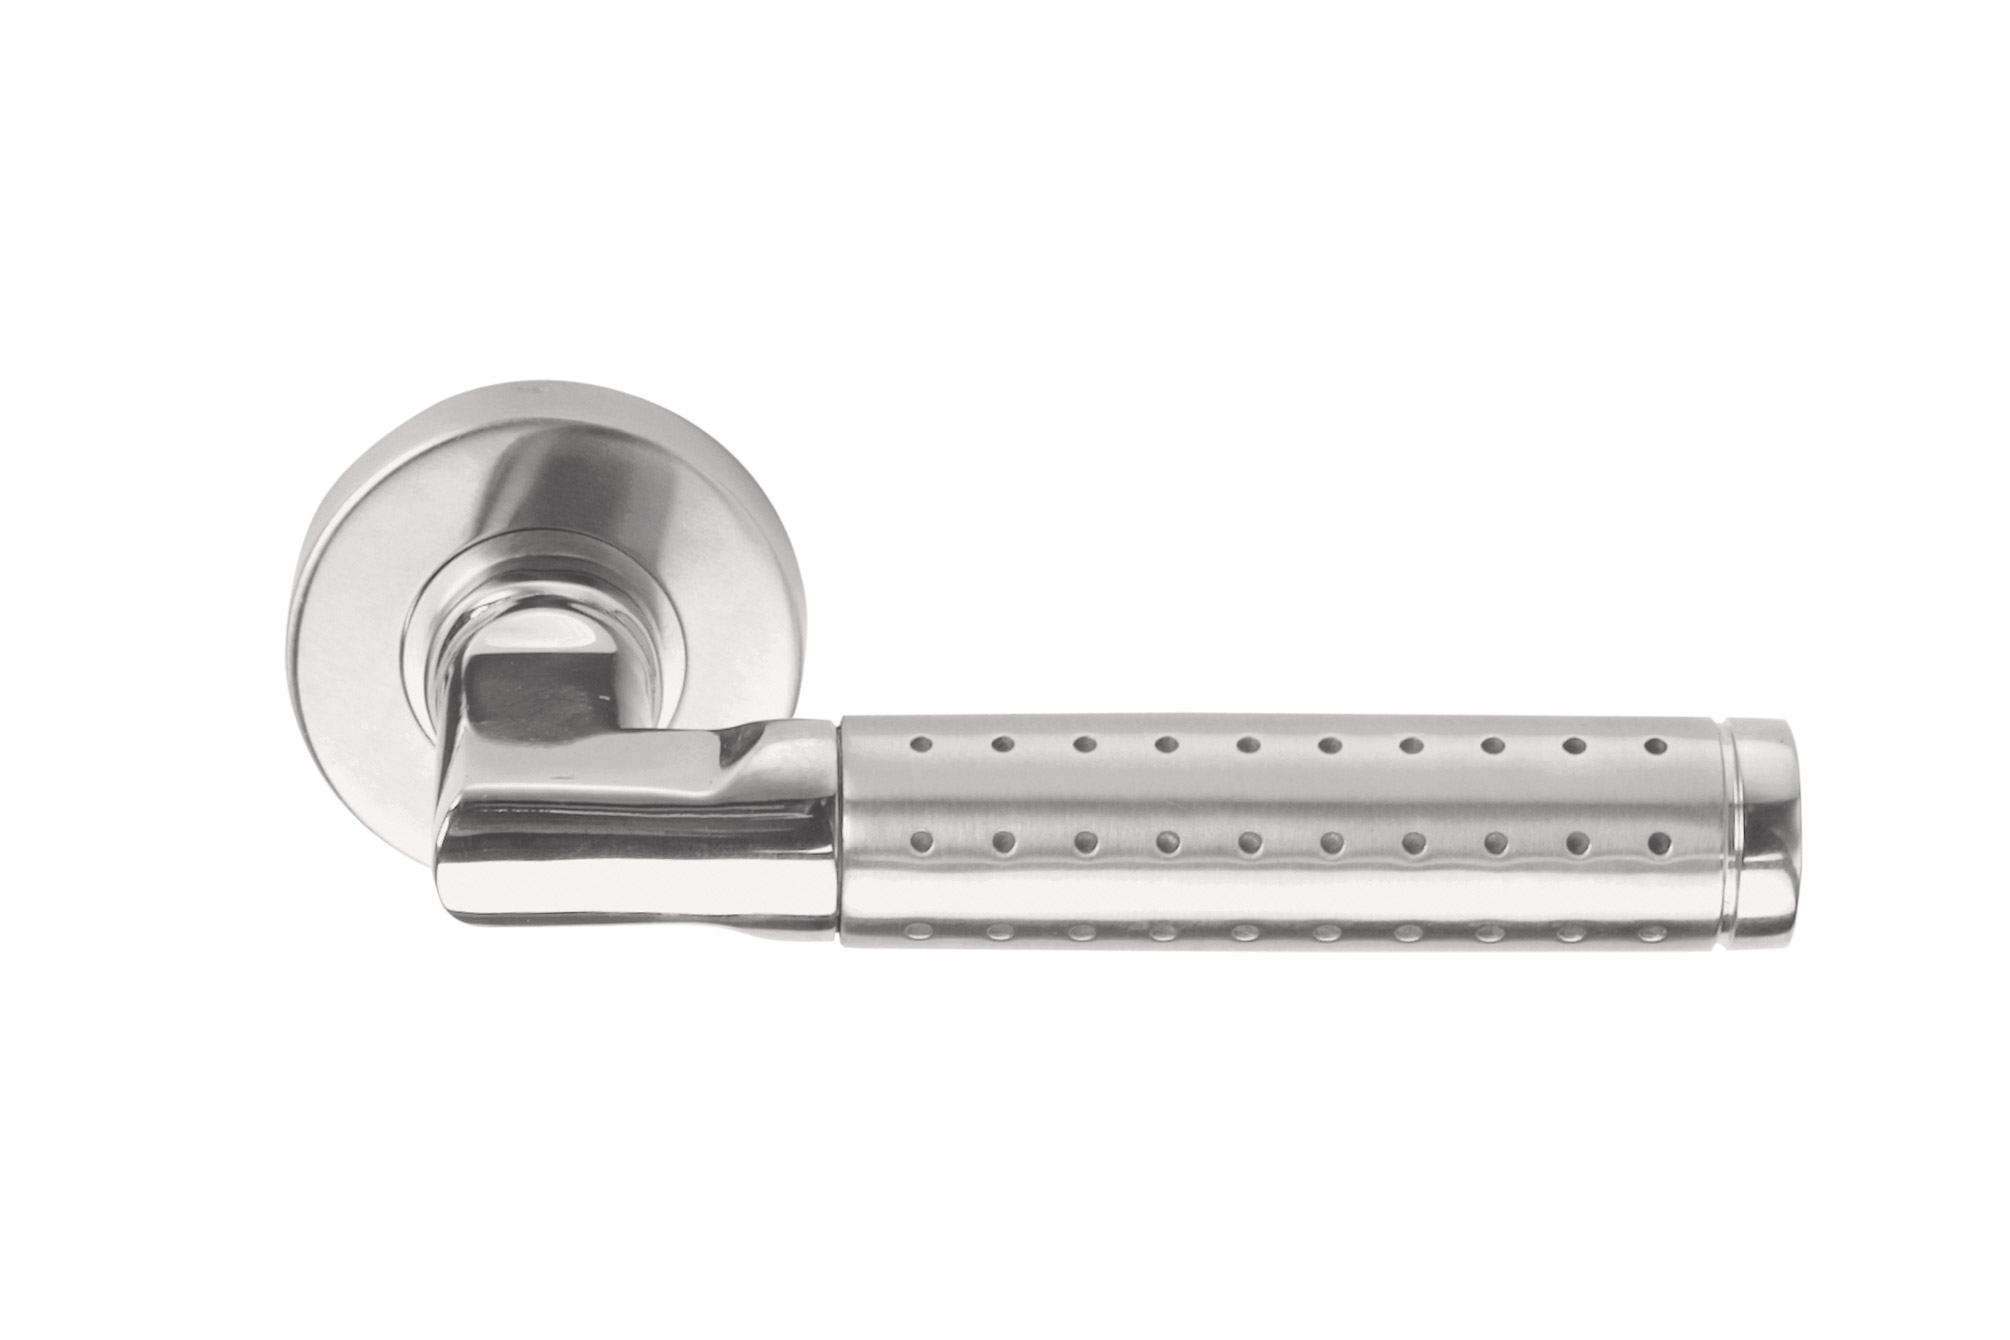 LBXI-lever-handle-on-rose-satin-and-polished-stainless-steel.jpg